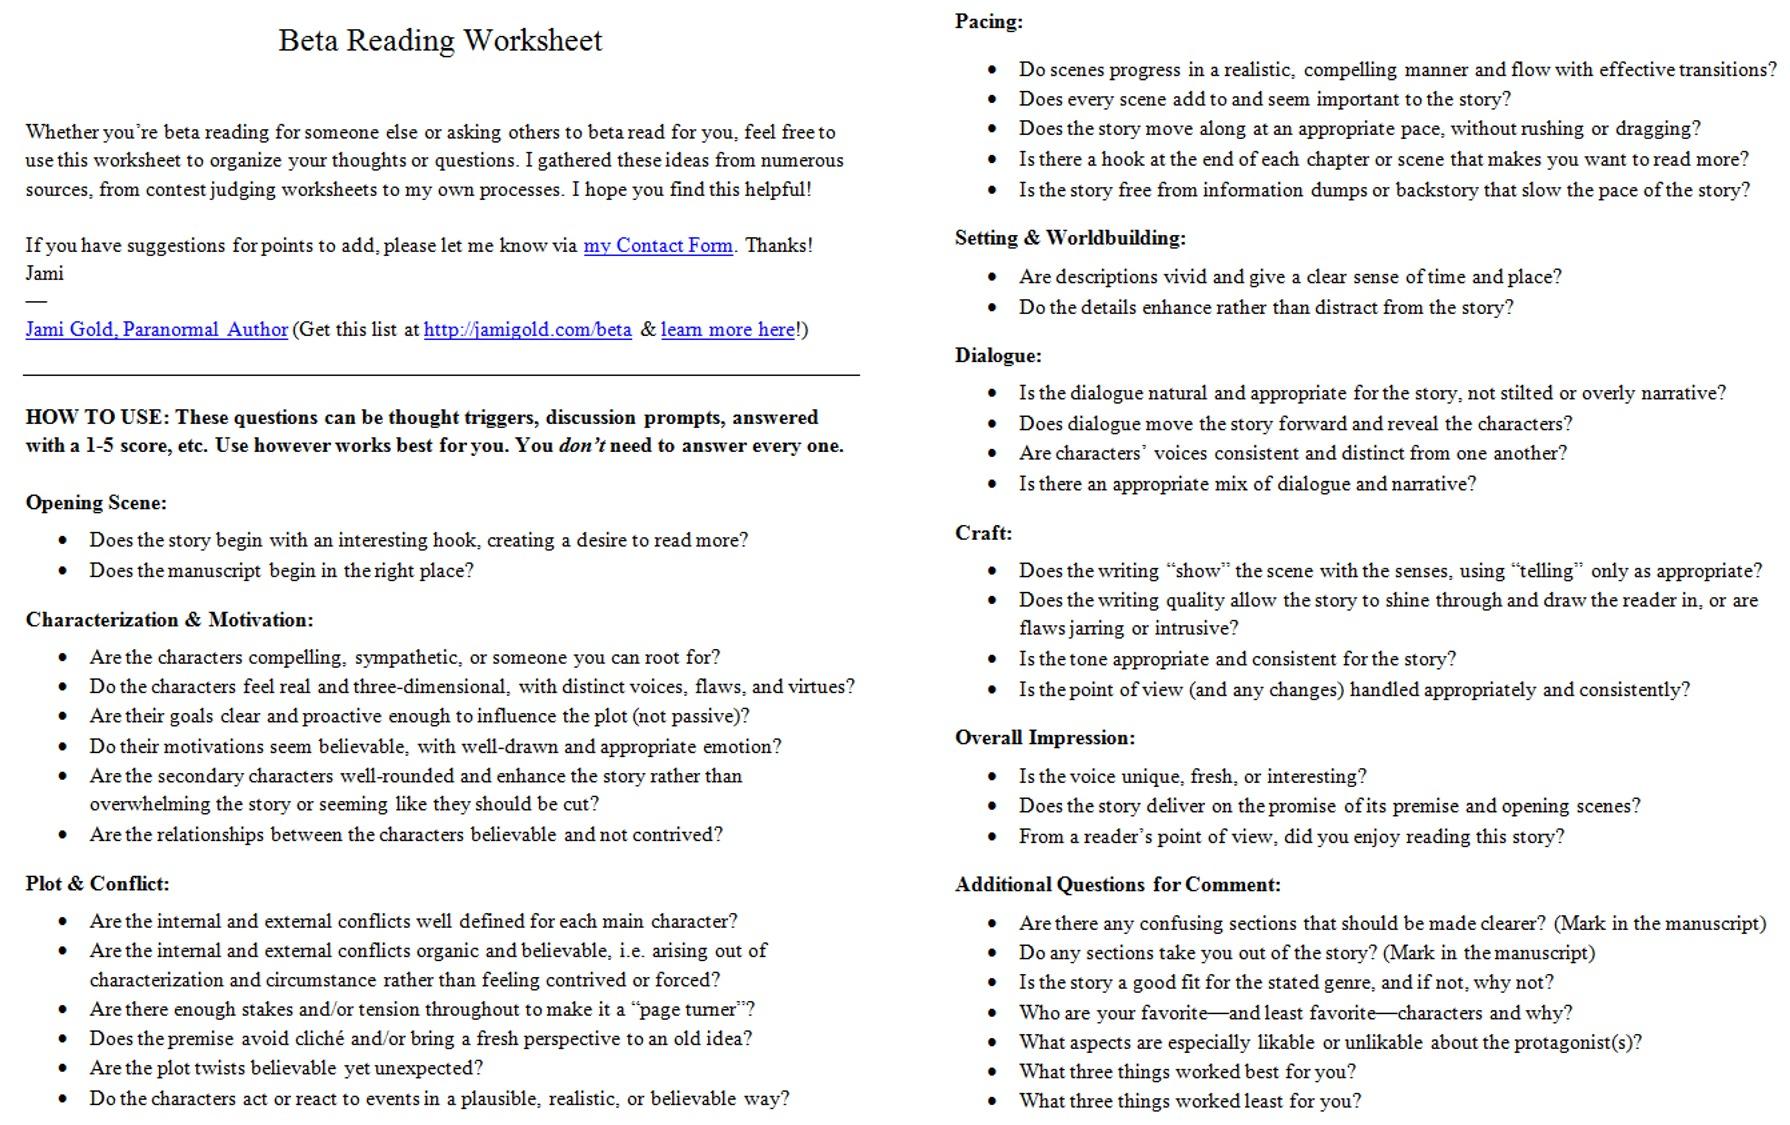 Weirdmailus  Unique Worksheets For Writers  Jami Gold Paranormal Author With Magnificent Screen Shot Of The Twopage Beta Reading Worksheet With Lovely Expected Value Worksheet Also Mitosis Practice Worksheet In Addition Metric Worksheets And Grief Worksheets For Adults As Well As Mean Mode Median Worksheet Additionally Money Worksheets For First Grade From Jamigoldcom With Weirdmailus  Magnificent Worksheets For Writers  Jami Gold Paranormal Author With Lovely Screen Shot Of The Twopage Beta Reading Worksheet And Unique Expected Value Worksheet Also Mitosis Practice Worksheet In Addition Metric Worksheets From Jamigoldcom